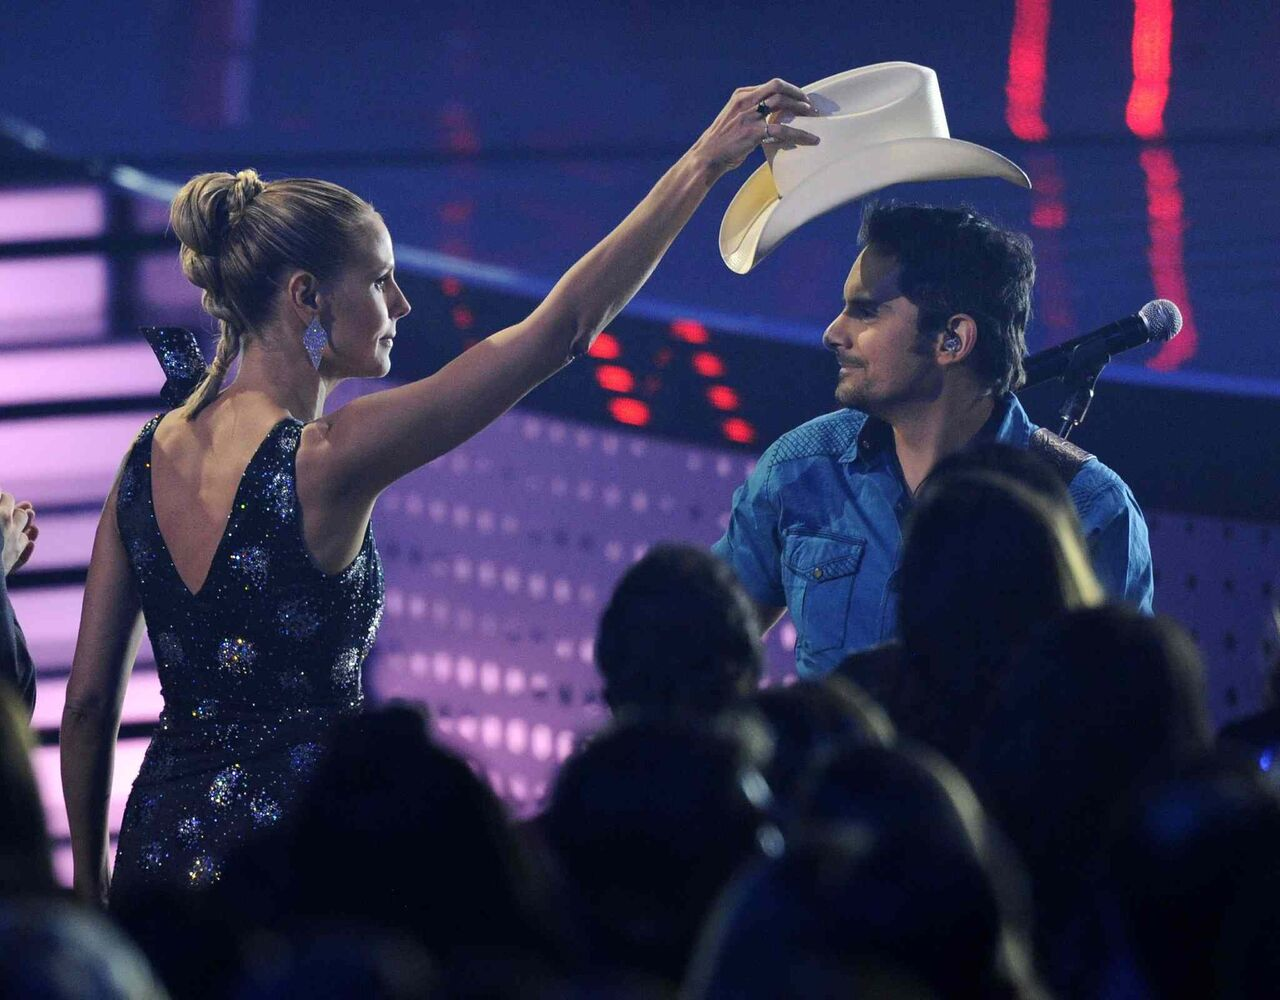 Heidi Klum takes Brad Paisley's hat as he performs 'The Mona Lisa' on stage at the 40th annual People's Choice Awards at the Nokia Theatre L.A. Live on Wednesday. (Chris Pizzello/ Invision/ The Associated Press)